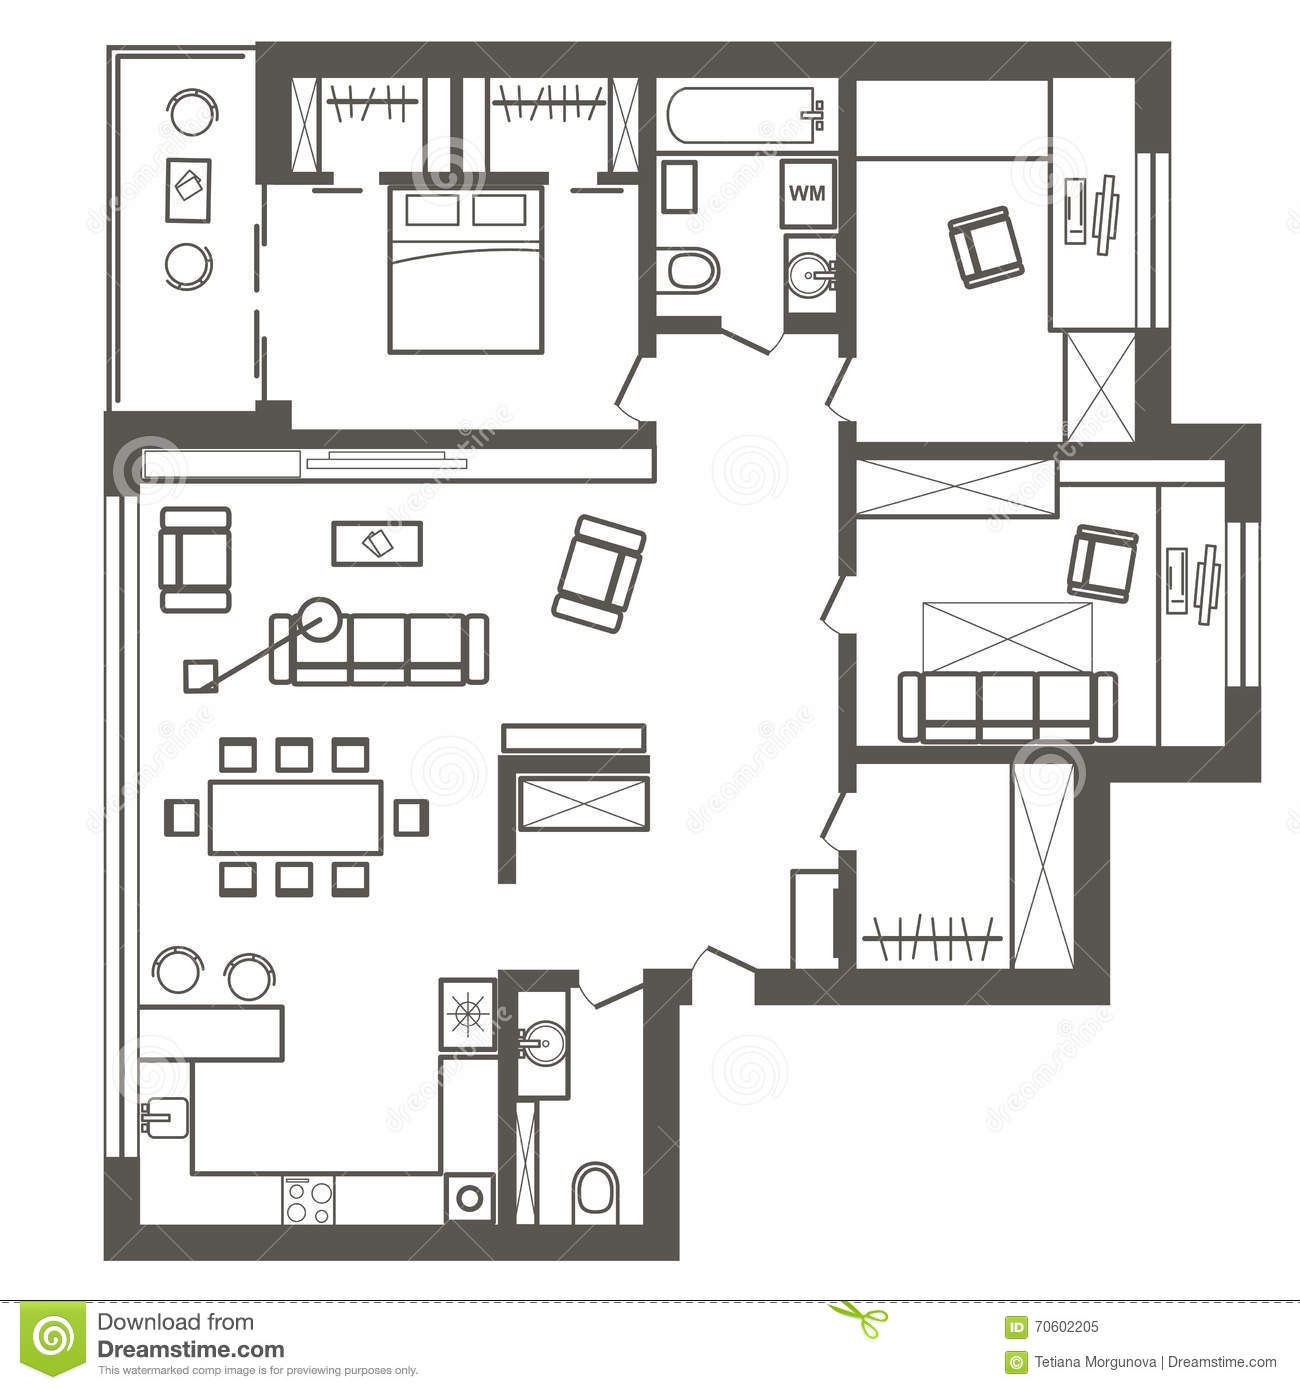 Architectural sketch plan of three bedroom apartment stock for Architectural designs for 3 bedroom flat